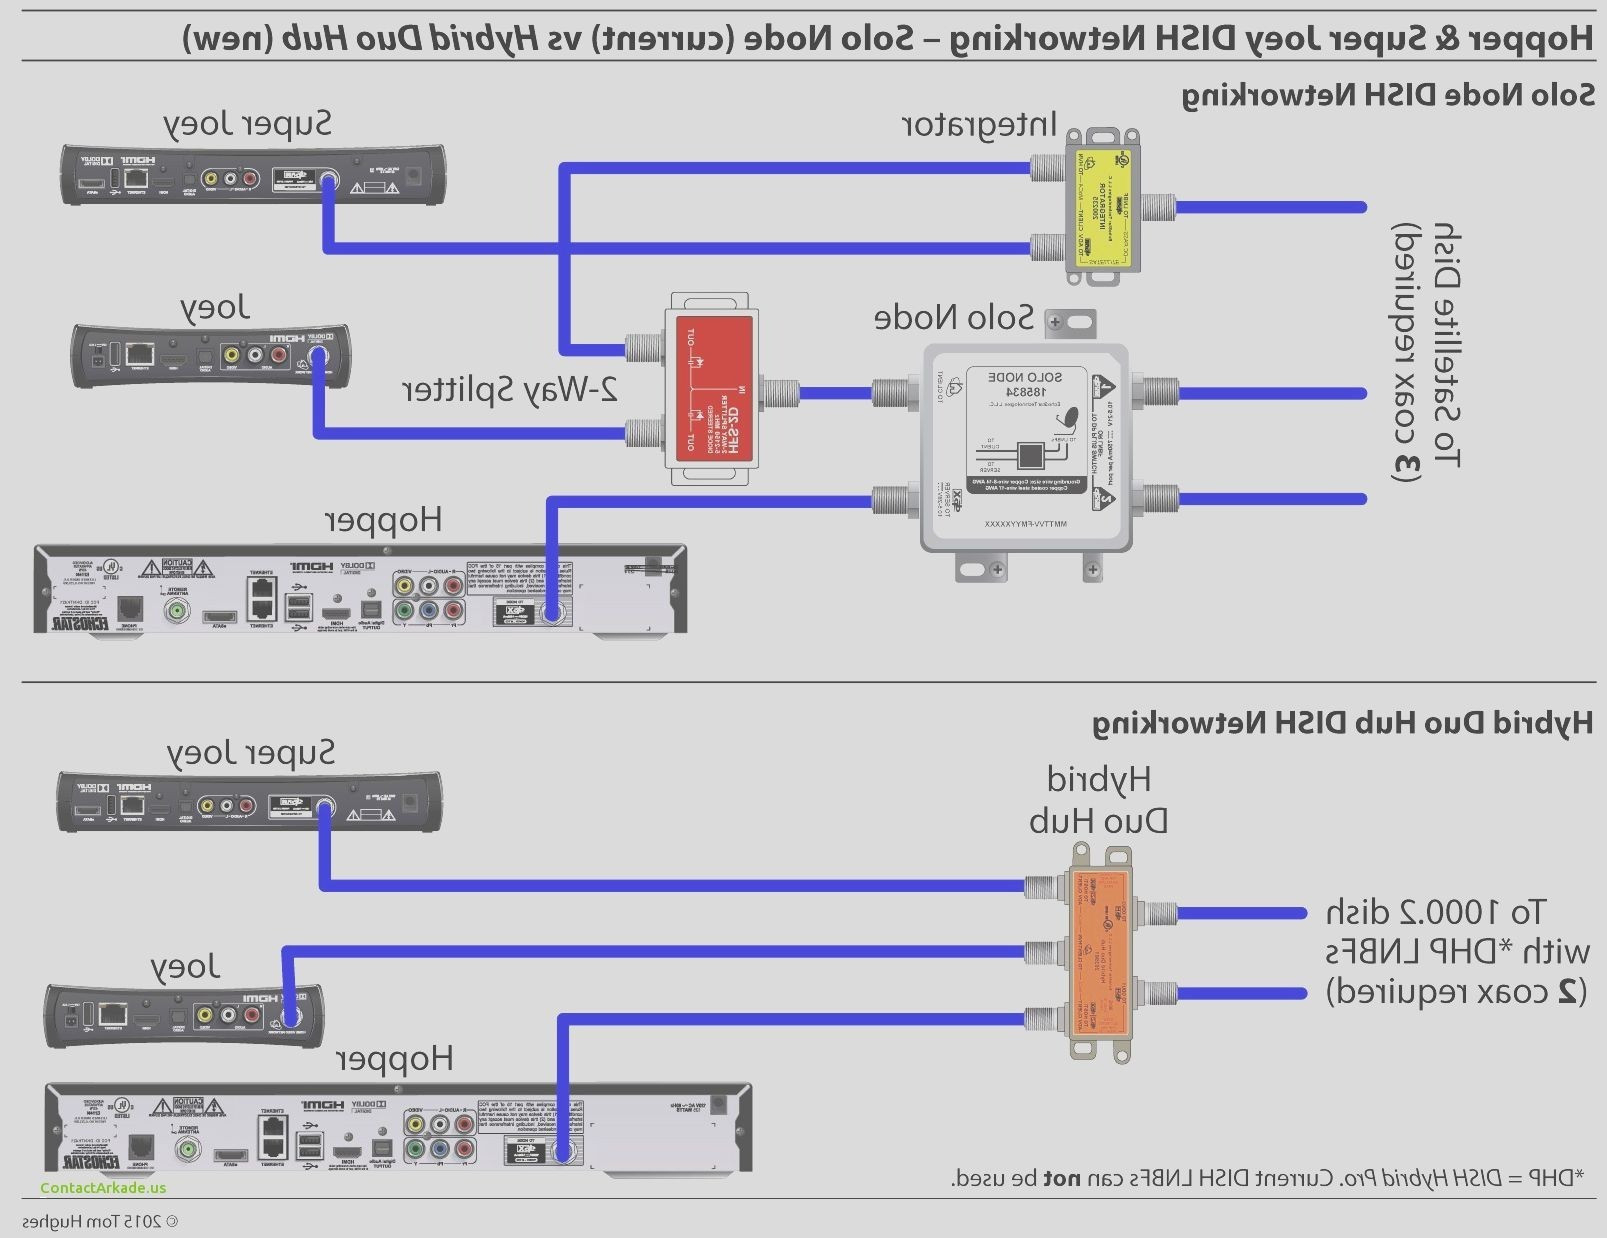 ethernet cable wiring diagram Collection-Wiring Diagram For A Cat5 Cable New Cat5e Wire Diagram New Ethernet Cable Wiring Diagram New Od Wiring 20-n